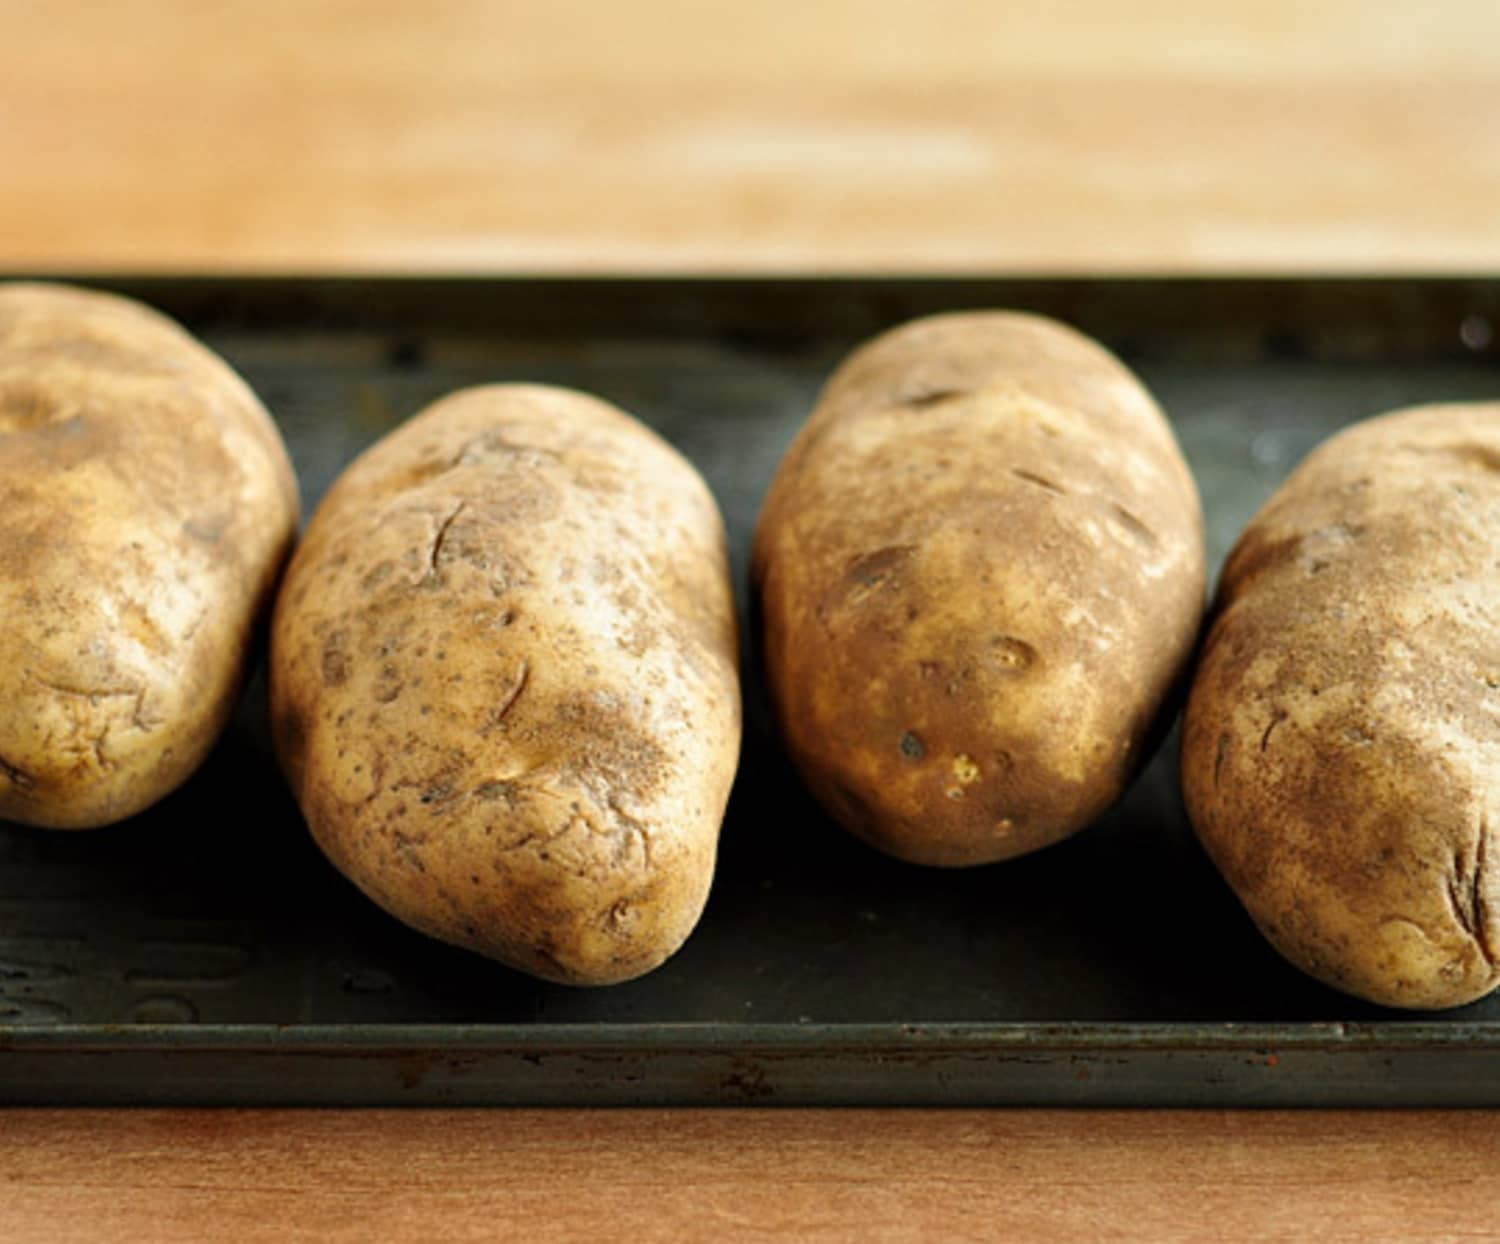 This Nightmare Potato Is a Good Reminder That Plants Are Pretty Freaking Powerful